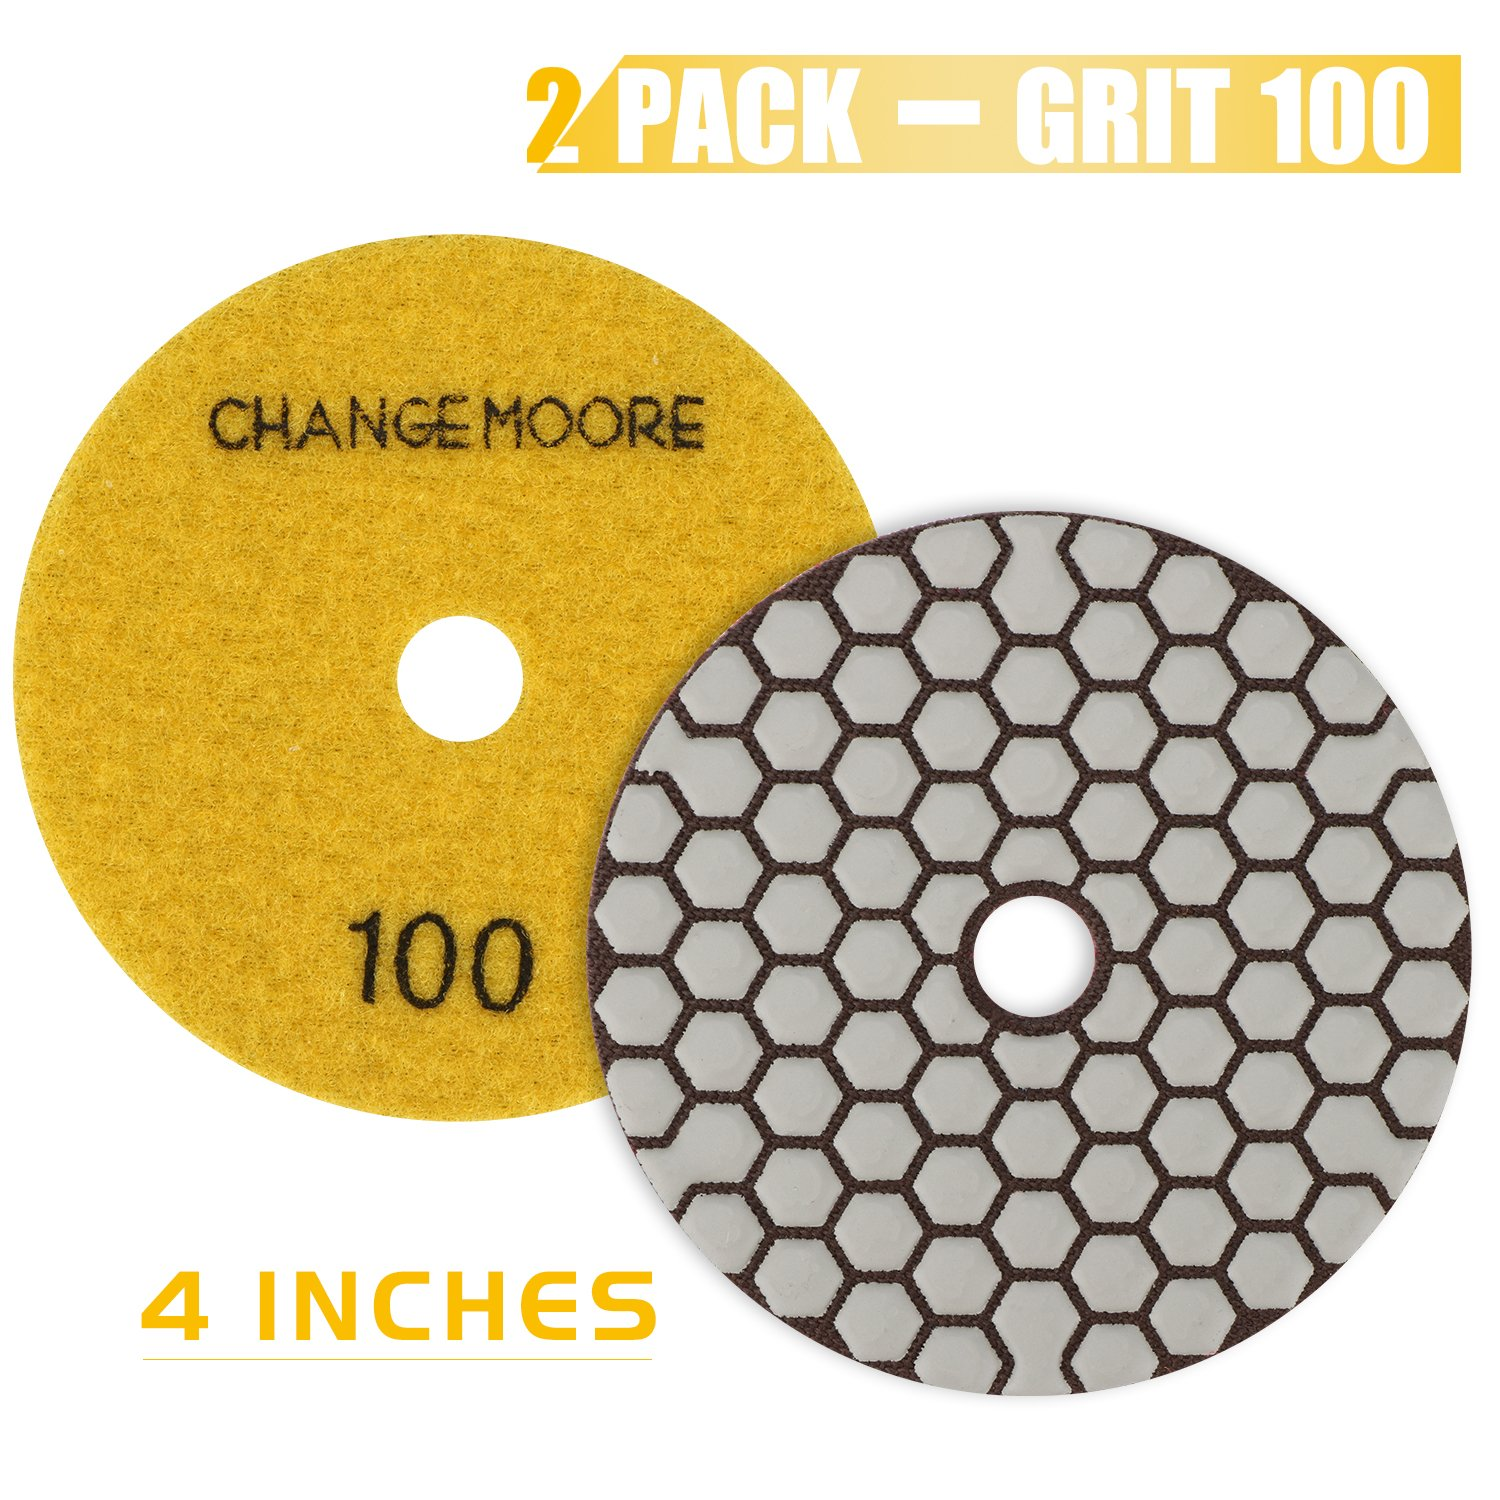 CHANGE MOORE Dry Diamond Polishing Pads 4'' for Marble Granite Travertine Terrazzo Concrete Stones, 2 pack-Grit 100 by CHANGE MOORE